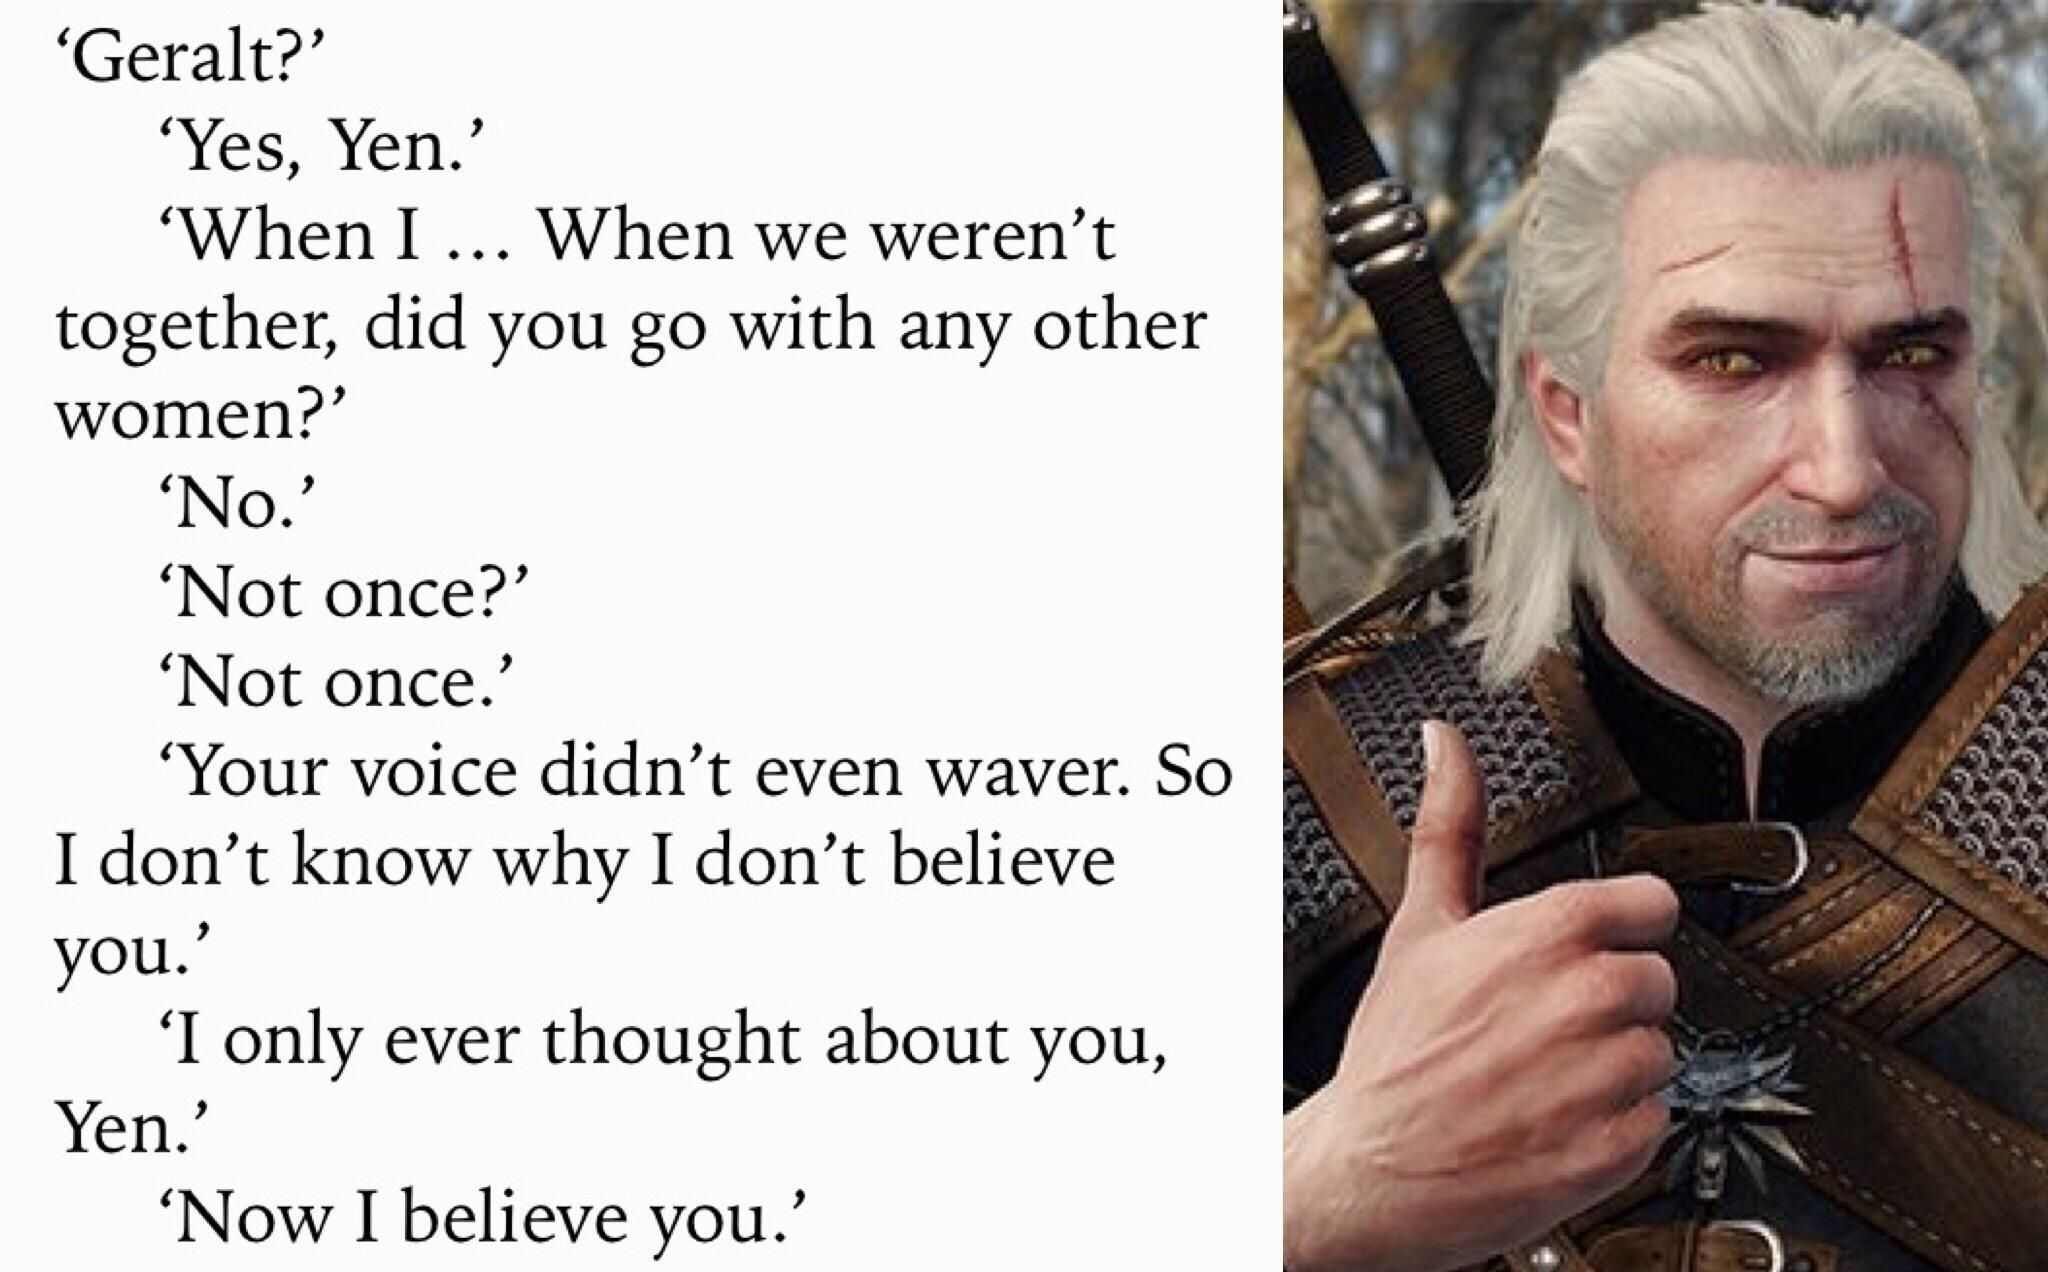 Geralt A Real Ladies Man Quote From Lady Of The Lake Thewitcher3 Ps4 Wildhunt Ps4share Games Gaming Thewitcher The Witcher Geralt Of Rivia Memes